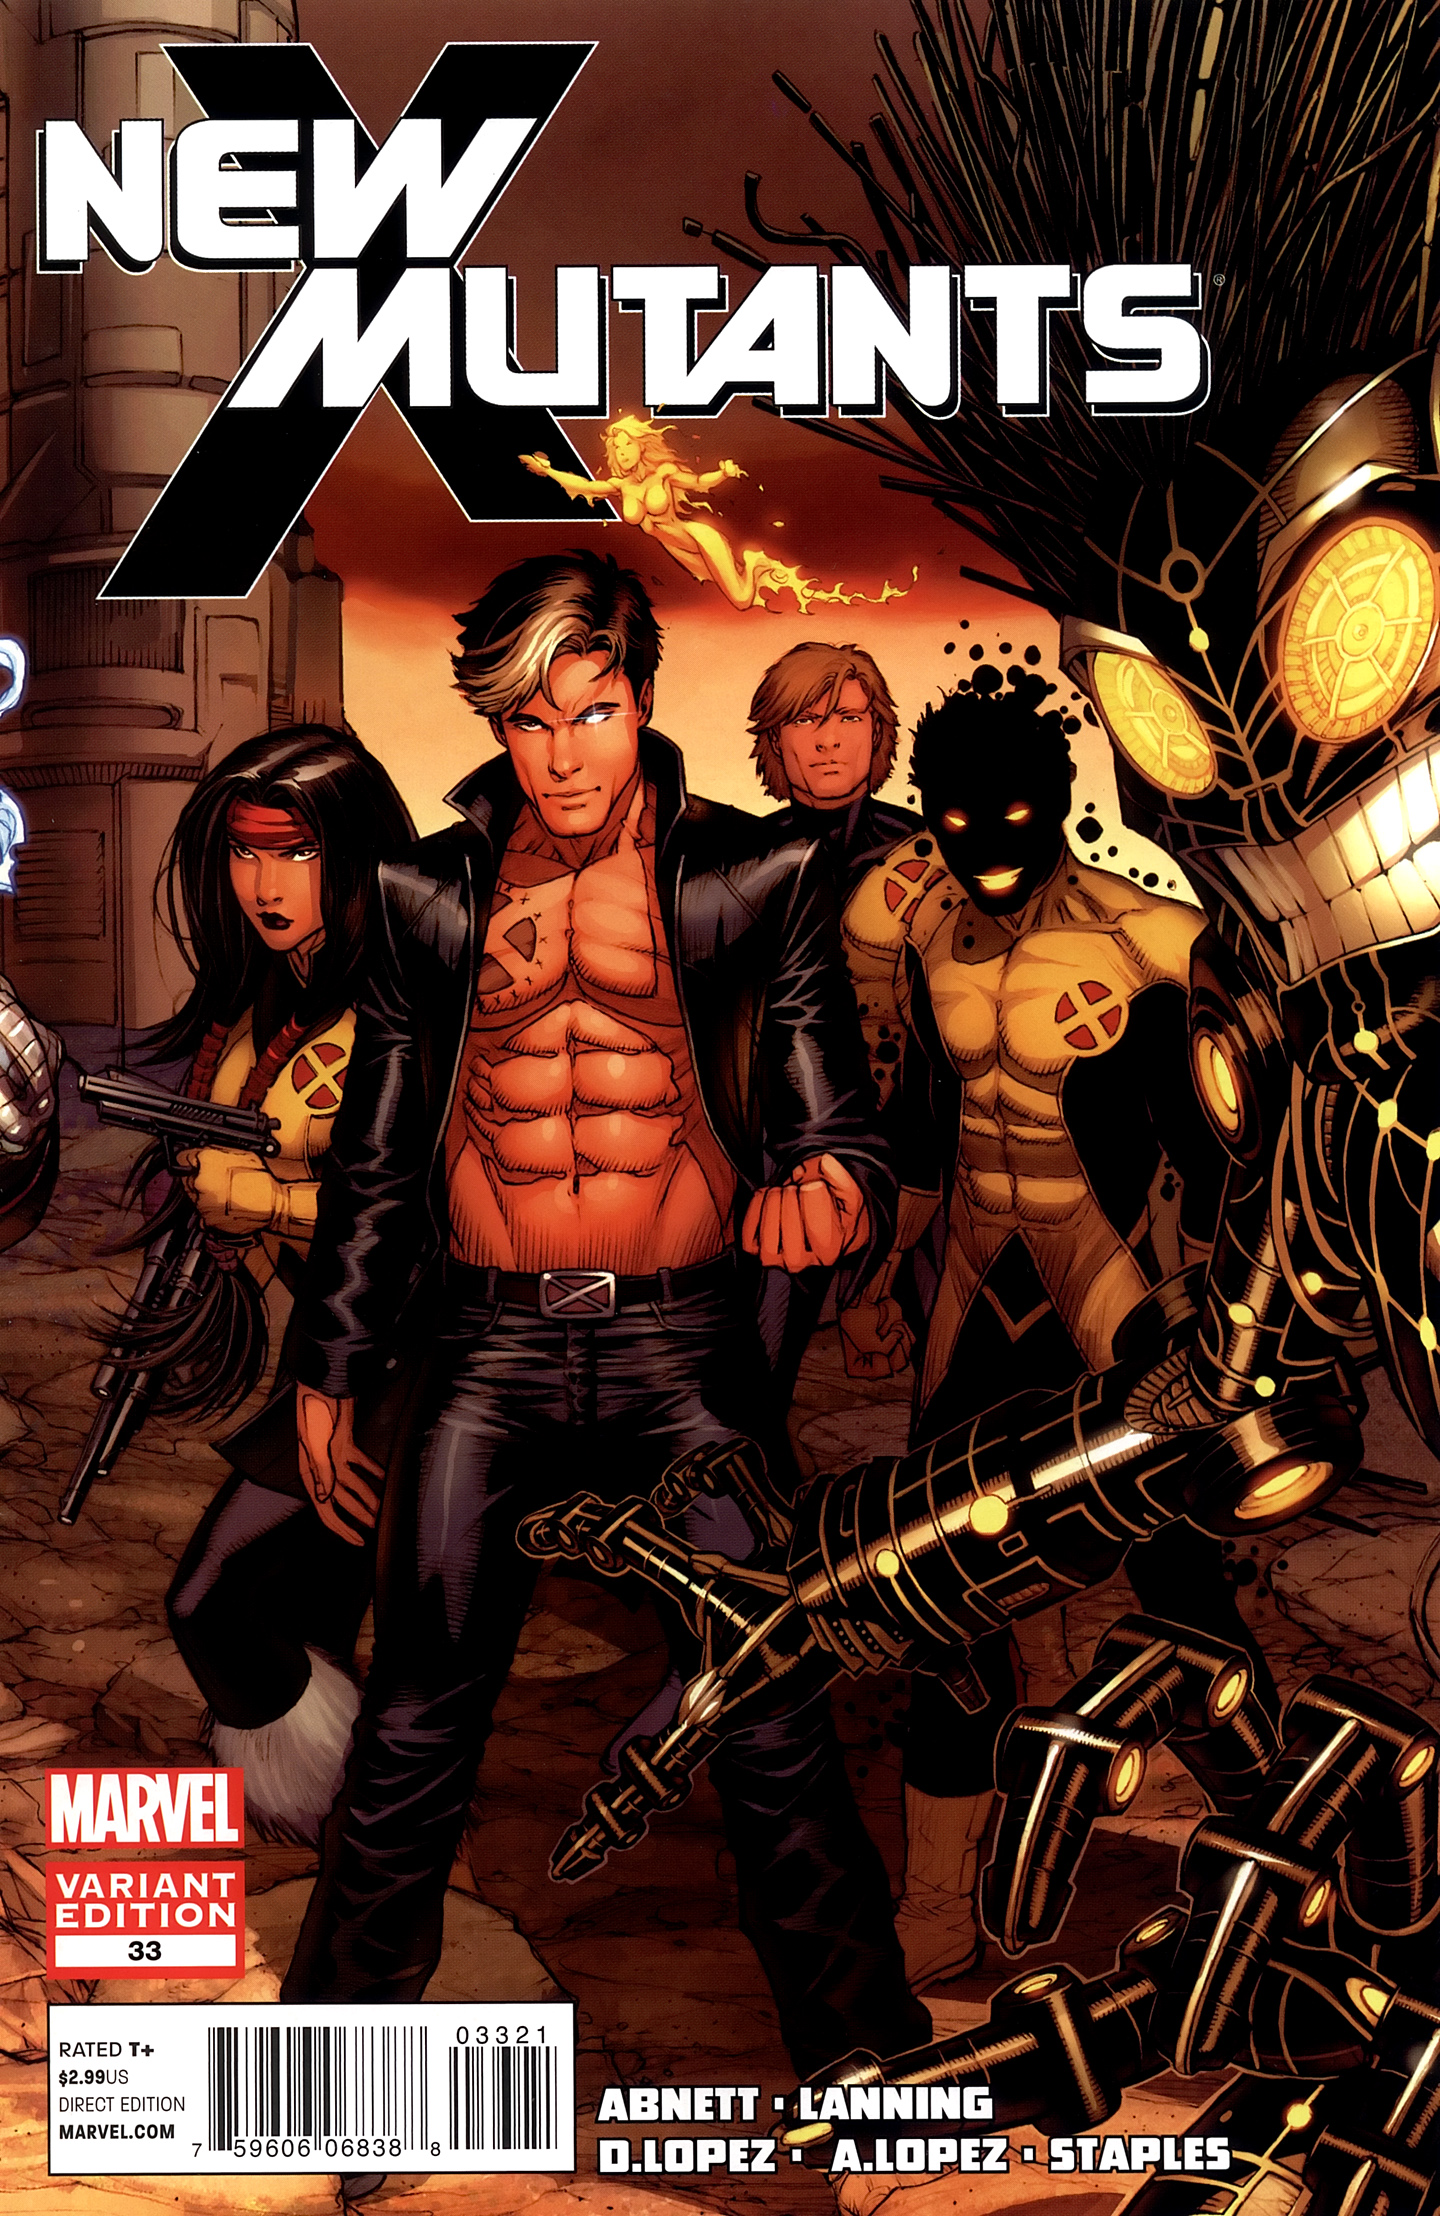 Nice wallpapers The New Mutants 1440x2216px